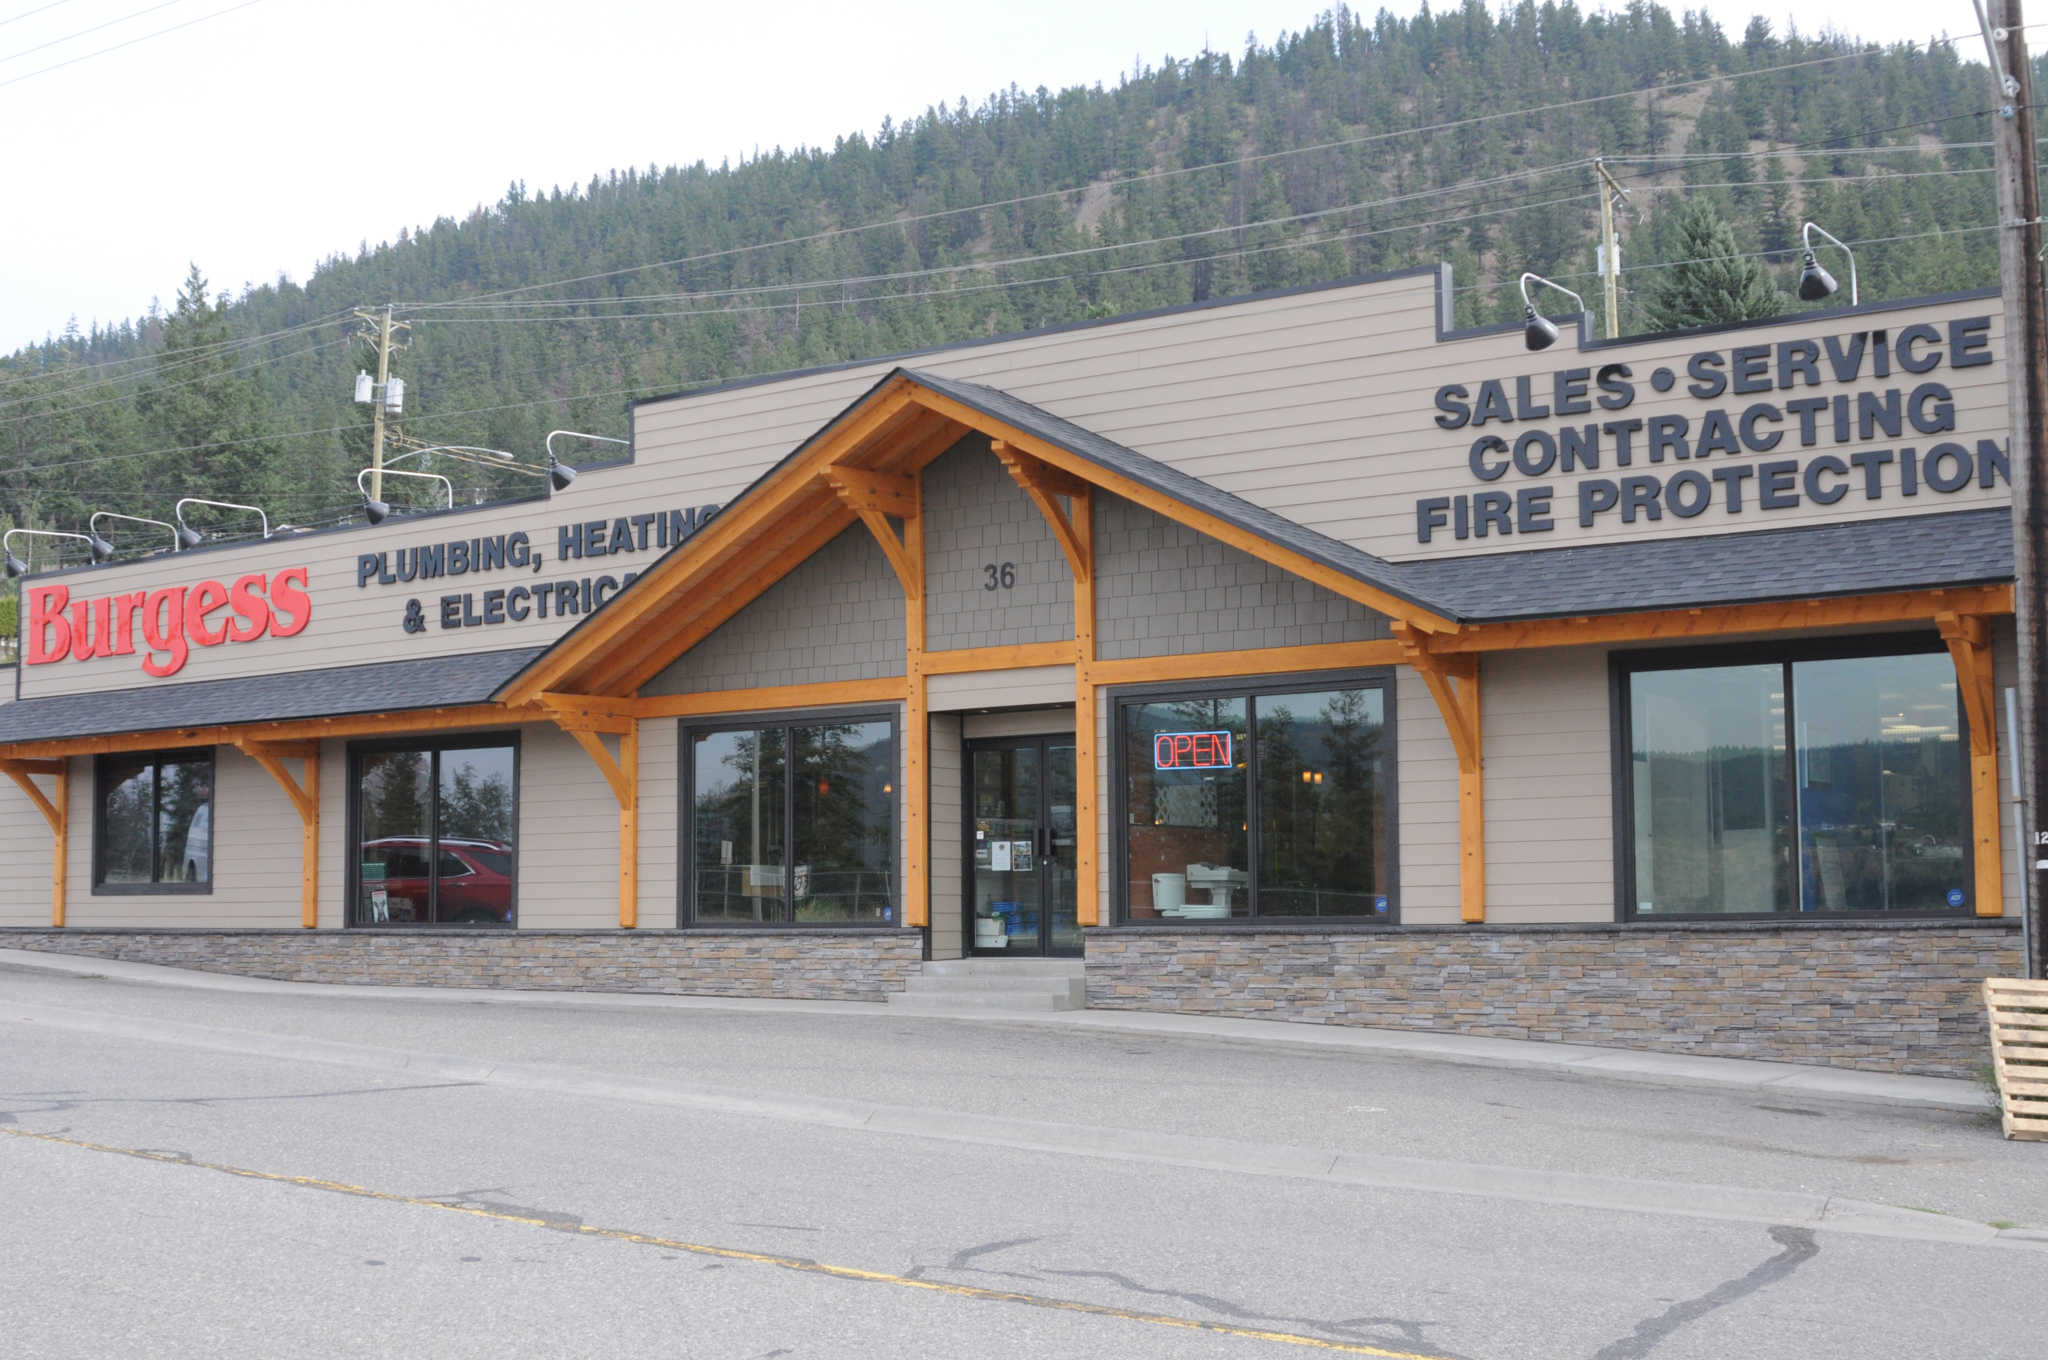 Burgess Plumbing Heating & Electrical Co Ltd in Williams Lake: Burgess Plumbing, Heating & Electrical store front on 36 Broadway Ave N Williams Lake BC